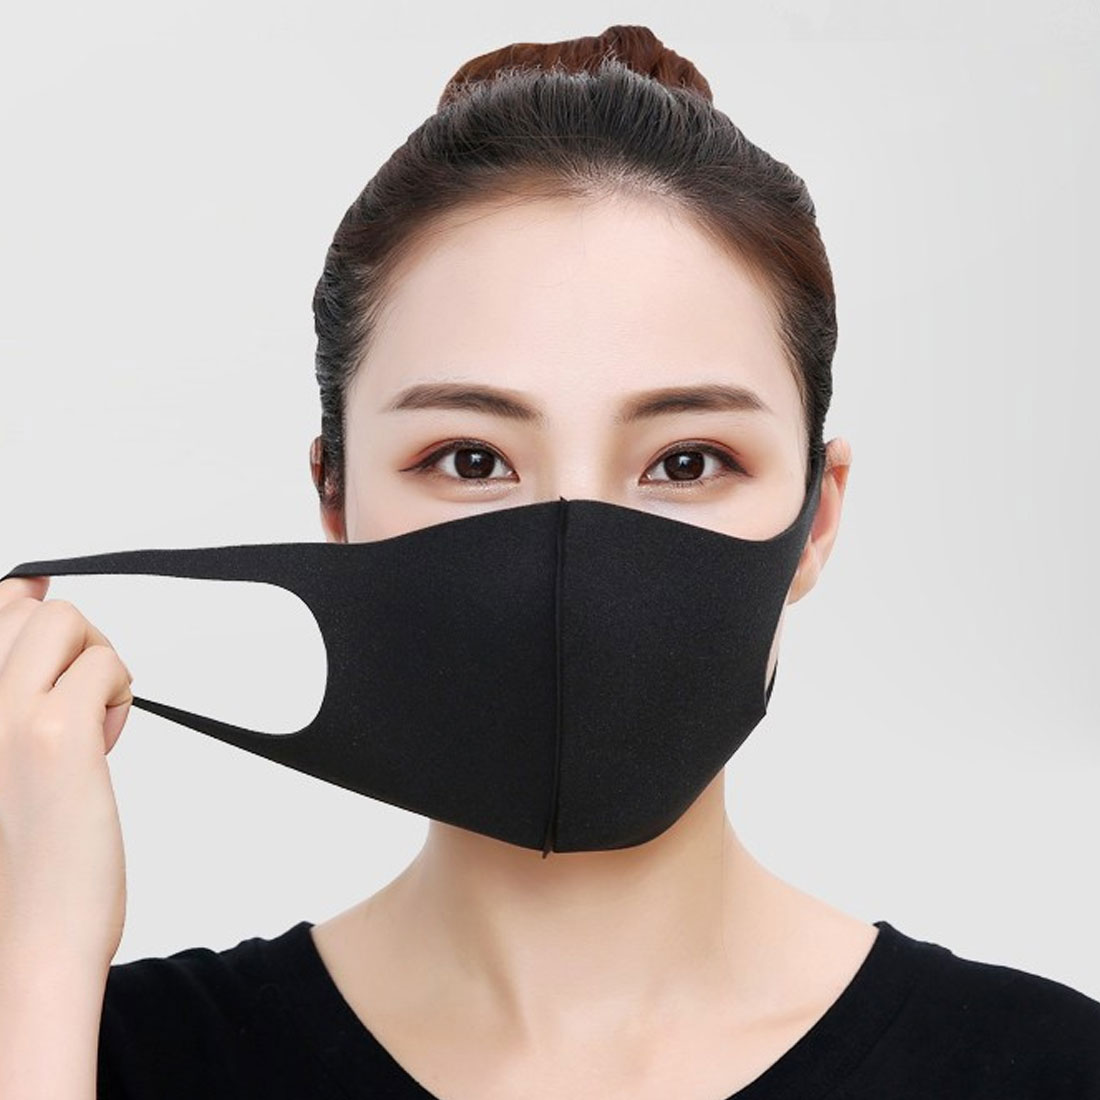 Simple 1pcs Cotton Mask Simple Masque Unisex Black Cycling Anti-dust Breathable  Mouth Face Mask